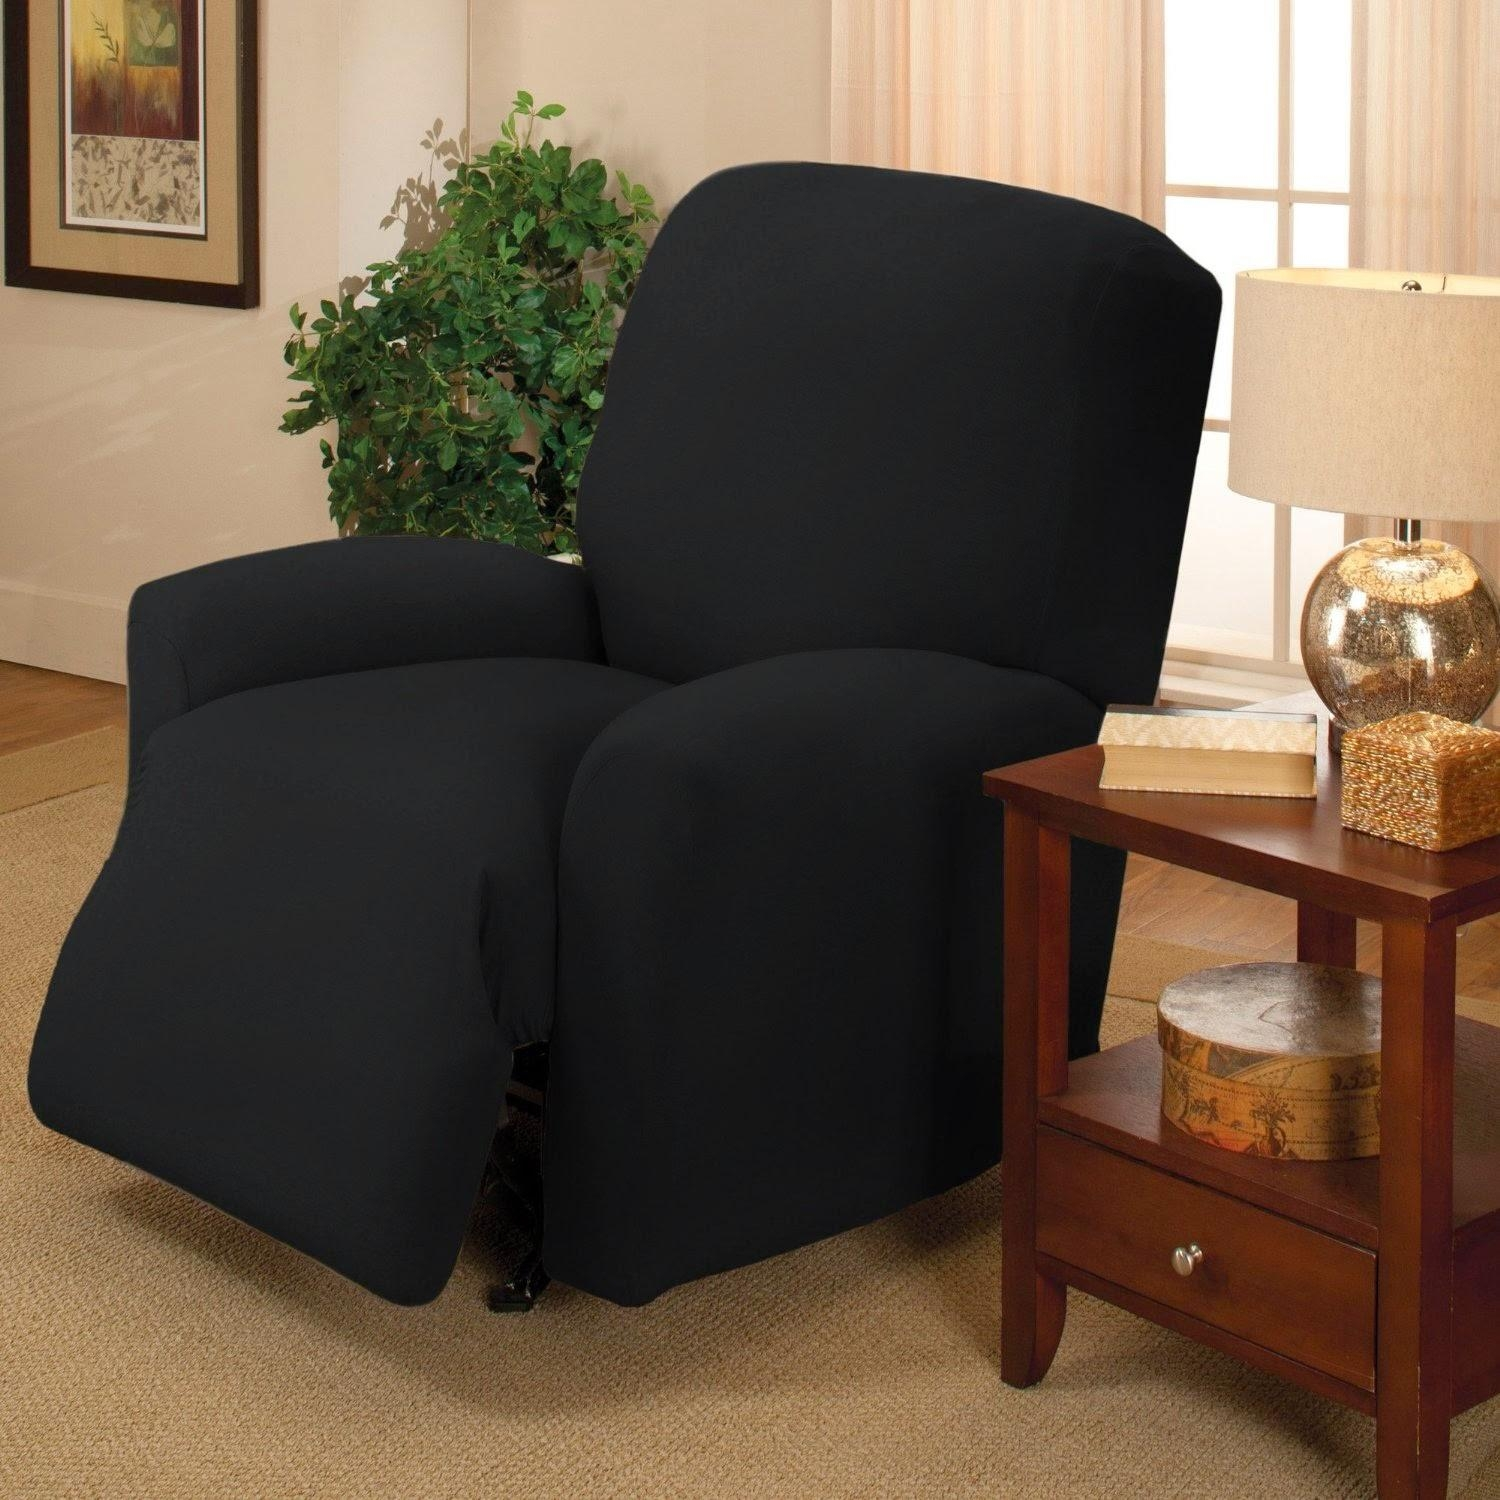 Decorating: Chair Using Leather Walmart Slipcovers For Home Within Black Slipcovers For Sofas (Image 6 of 20)